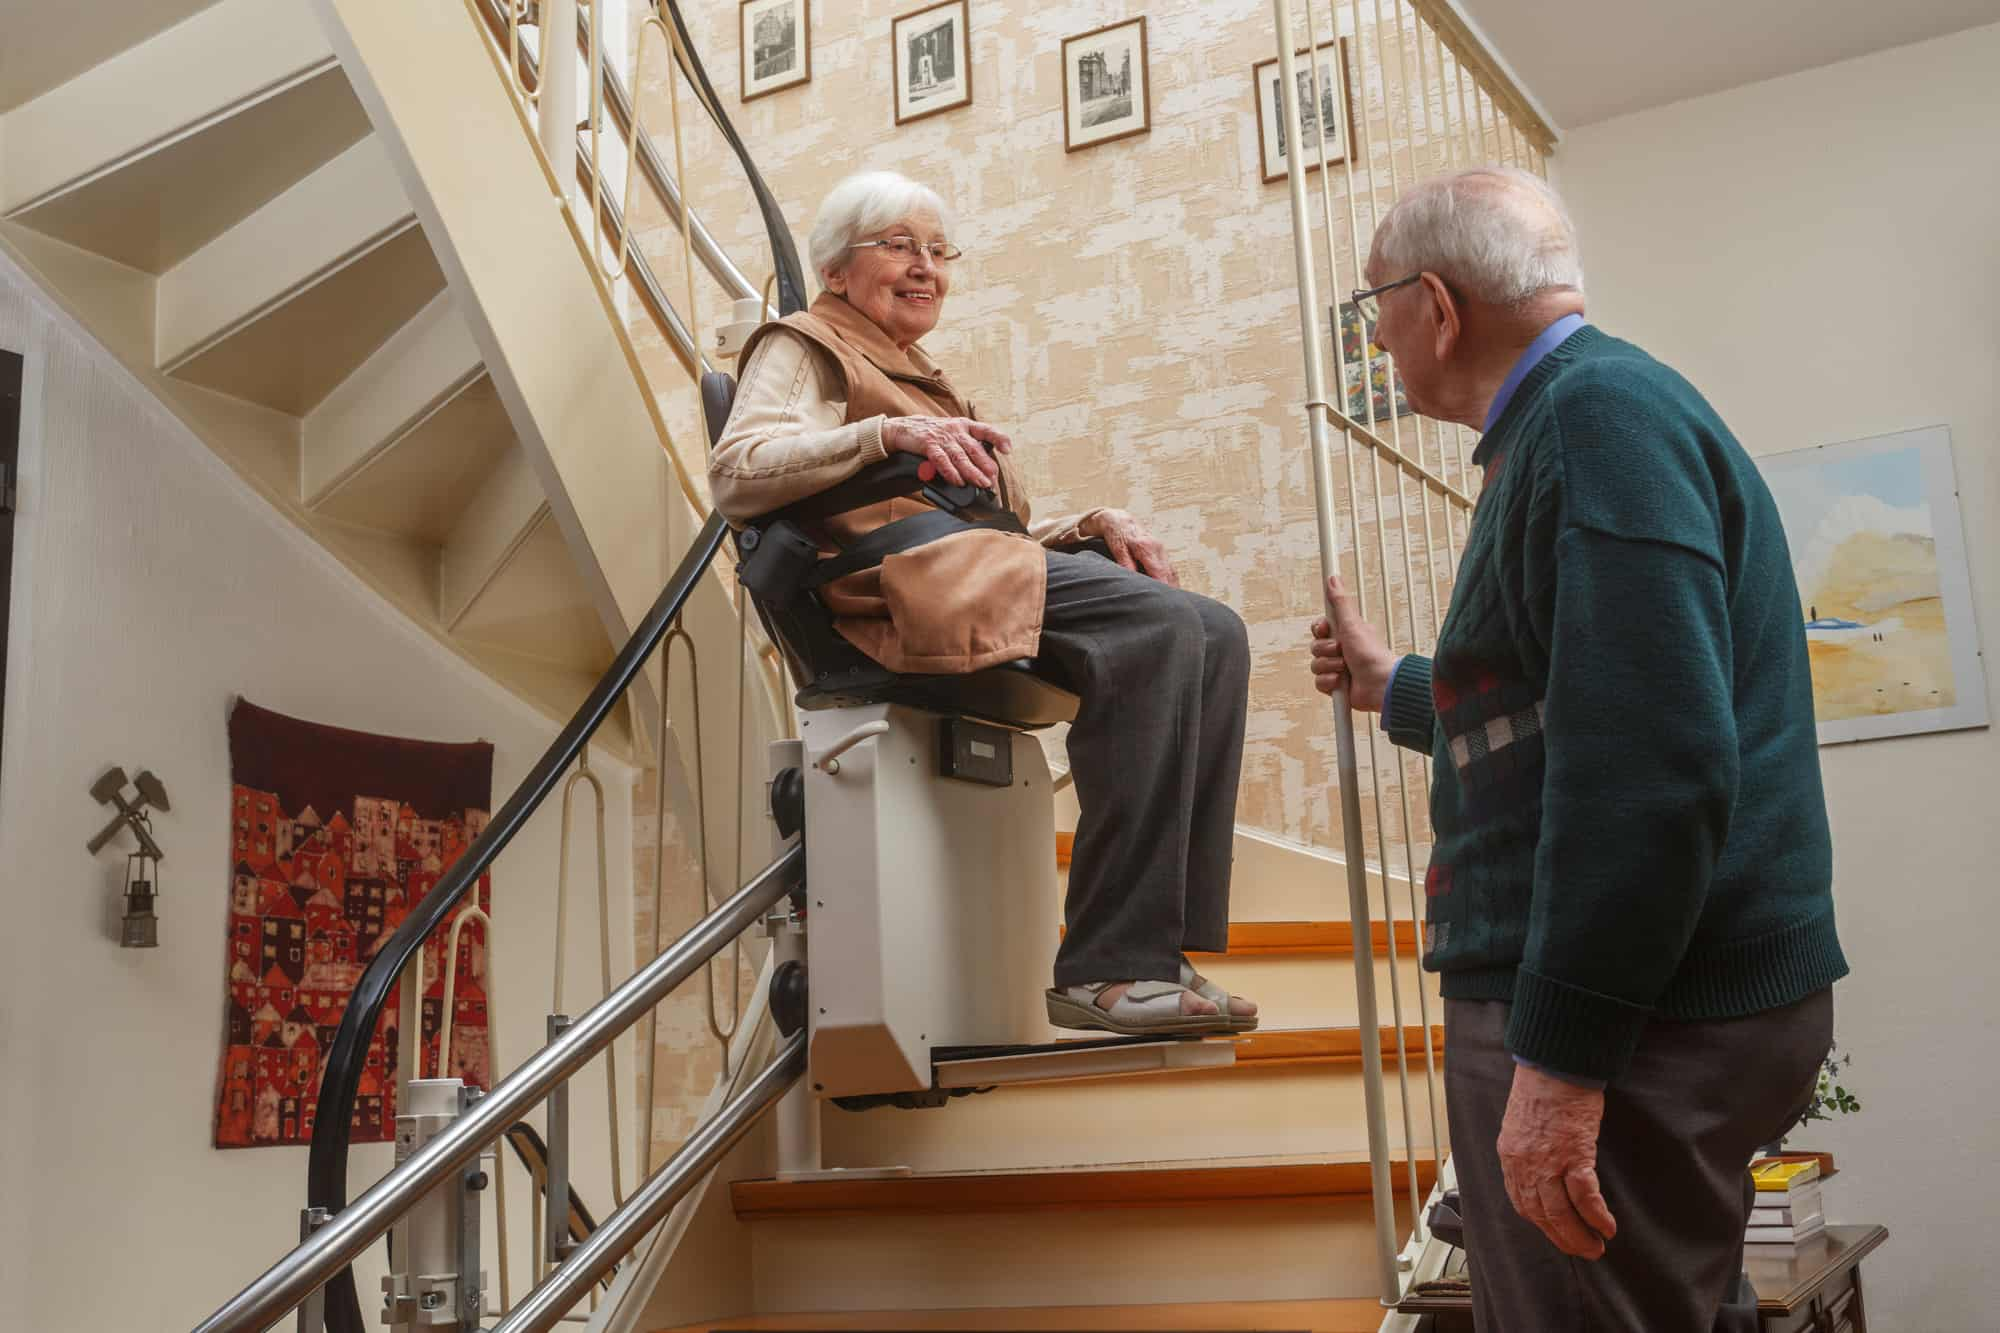 Stair Lift With Elderly Couple